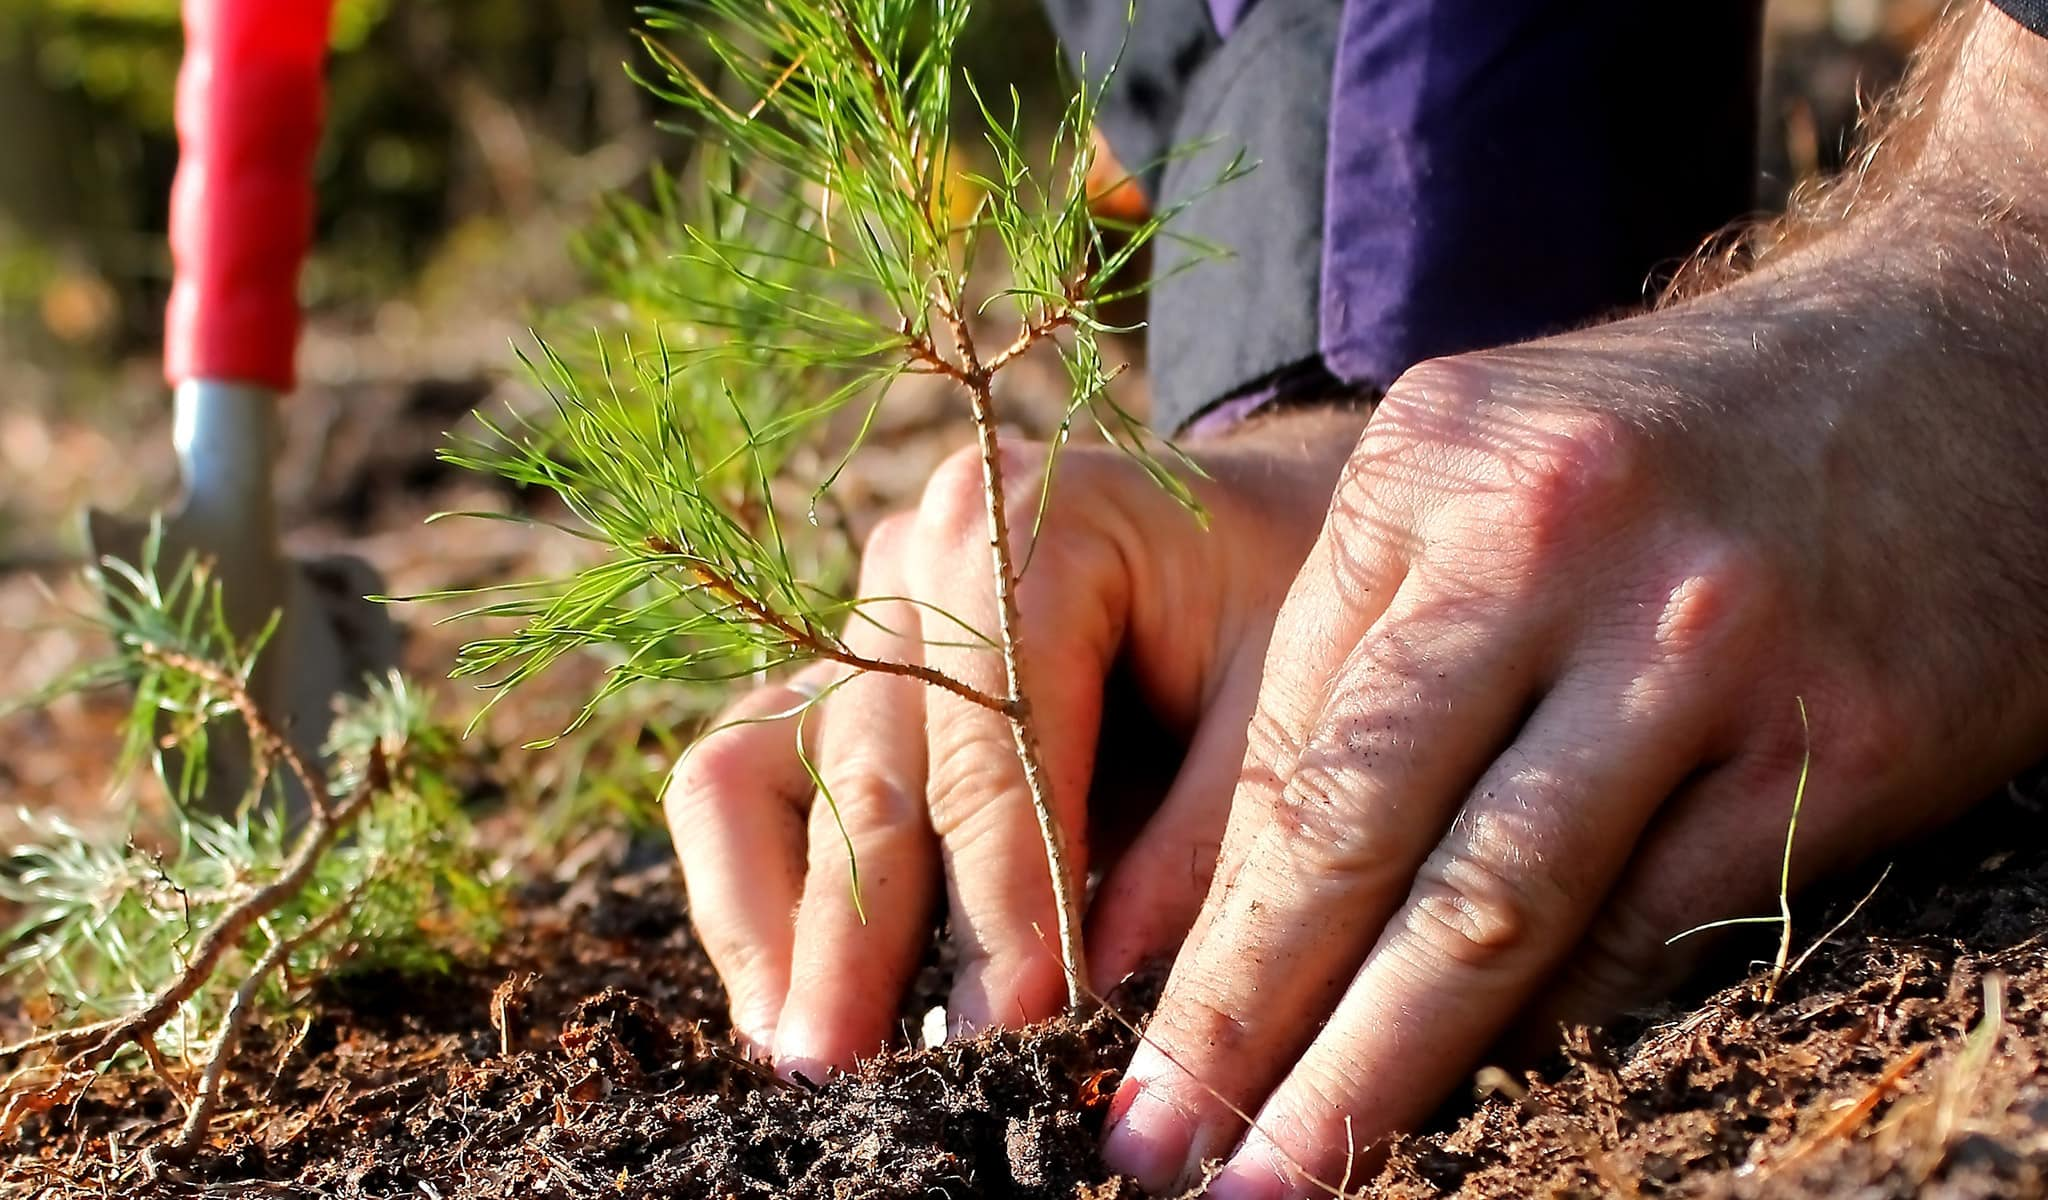 Arbor Services worker planting baby tree